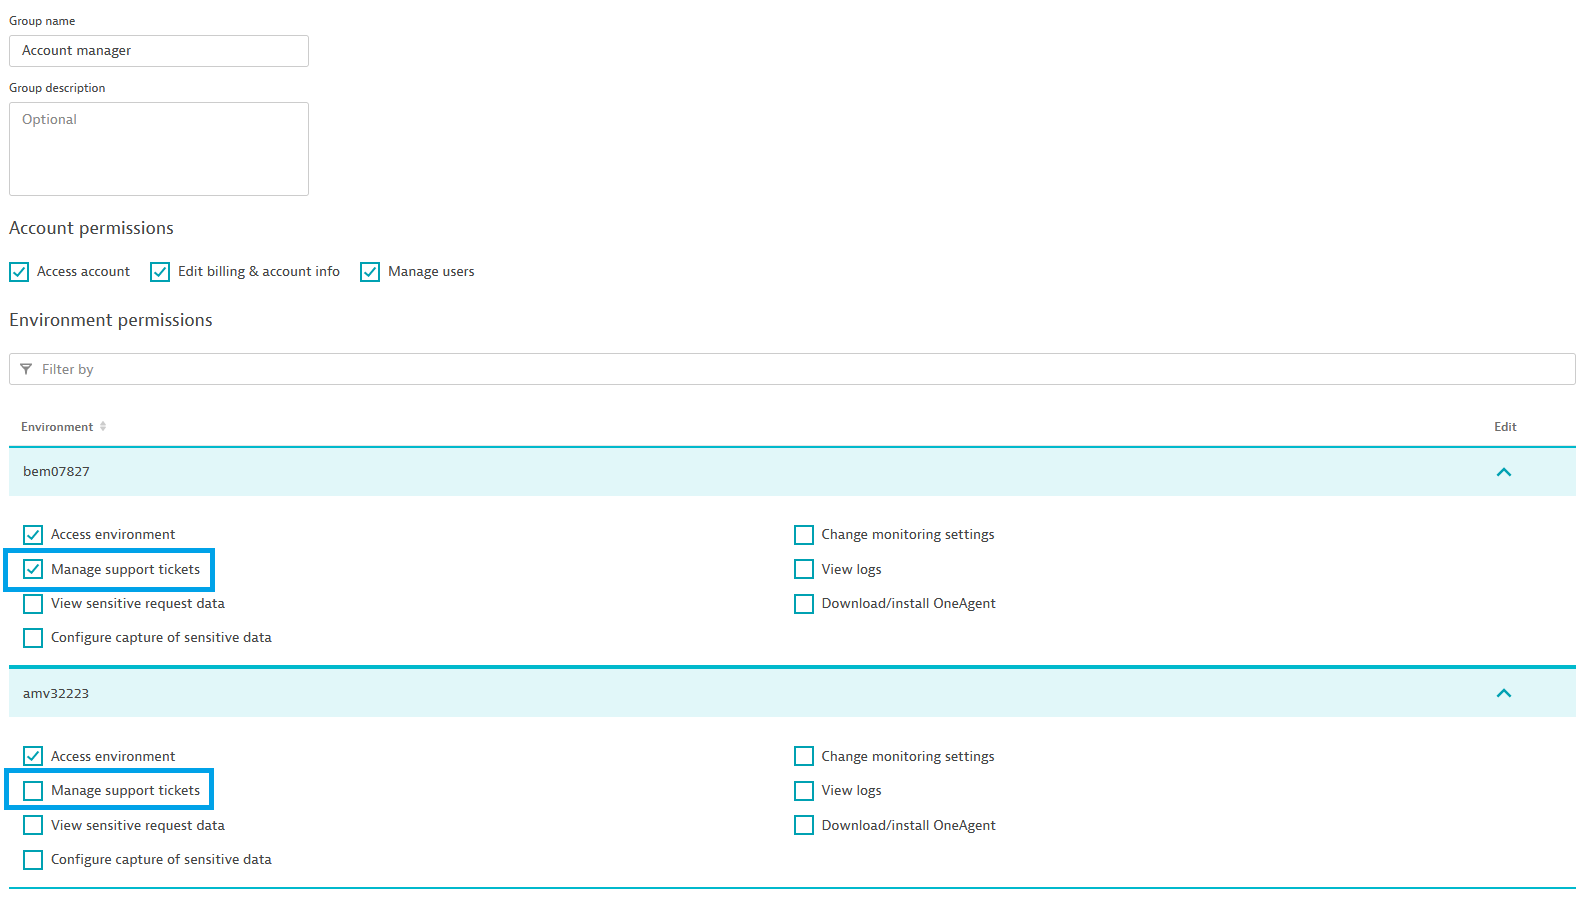 Dynatrace screenshot group management section of account settings